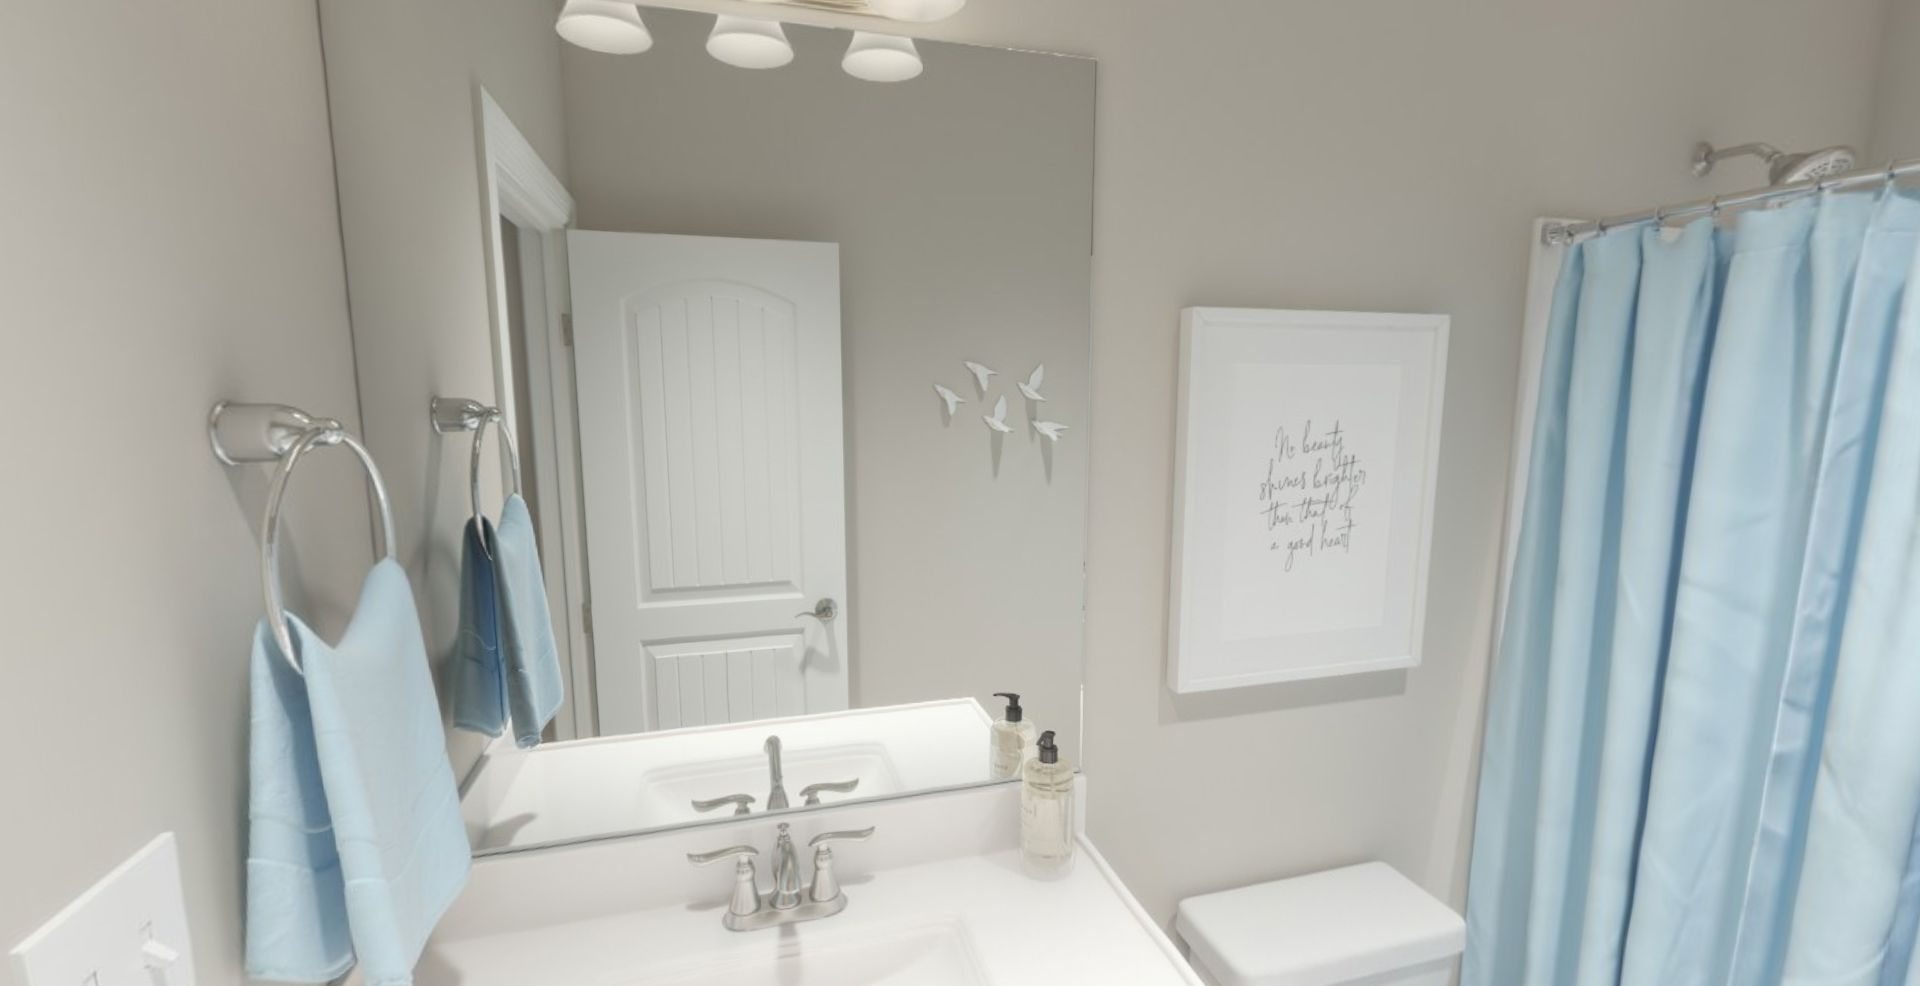 Bathroom featured in the Adagio By Olthof Homes in Indianapolis, IN